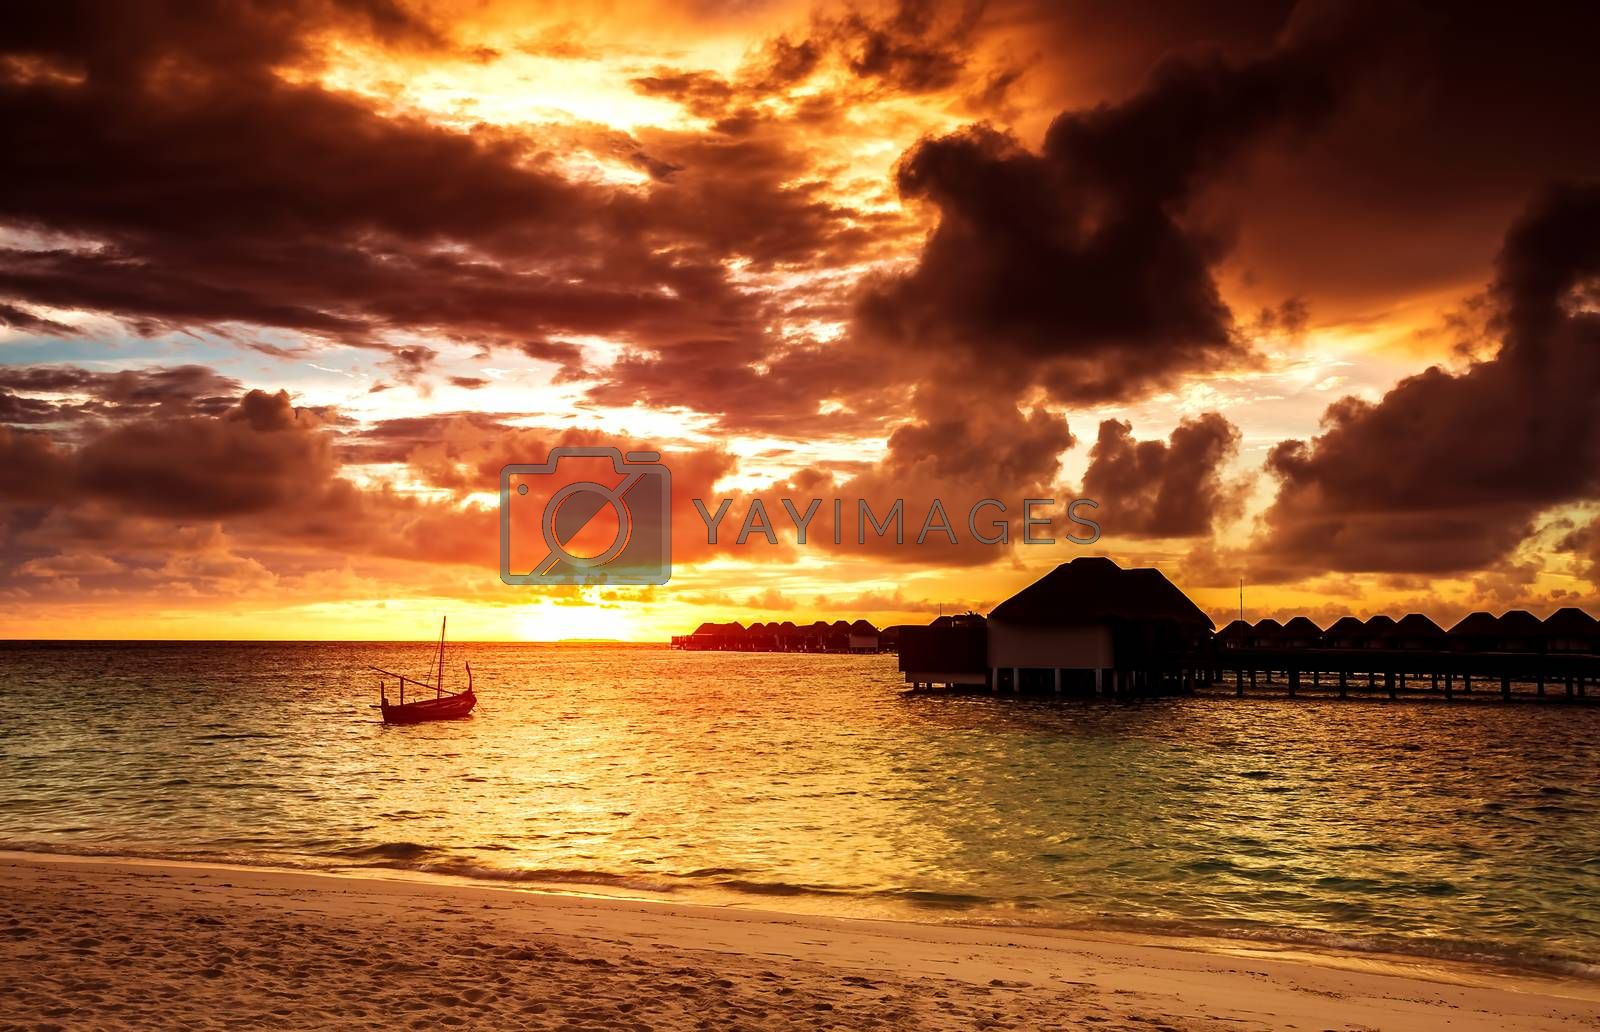 Overcast weather over sea, beautiful seascape in the evening in orange sunset light, summer holidays on Maldives island, travel and tourism concept